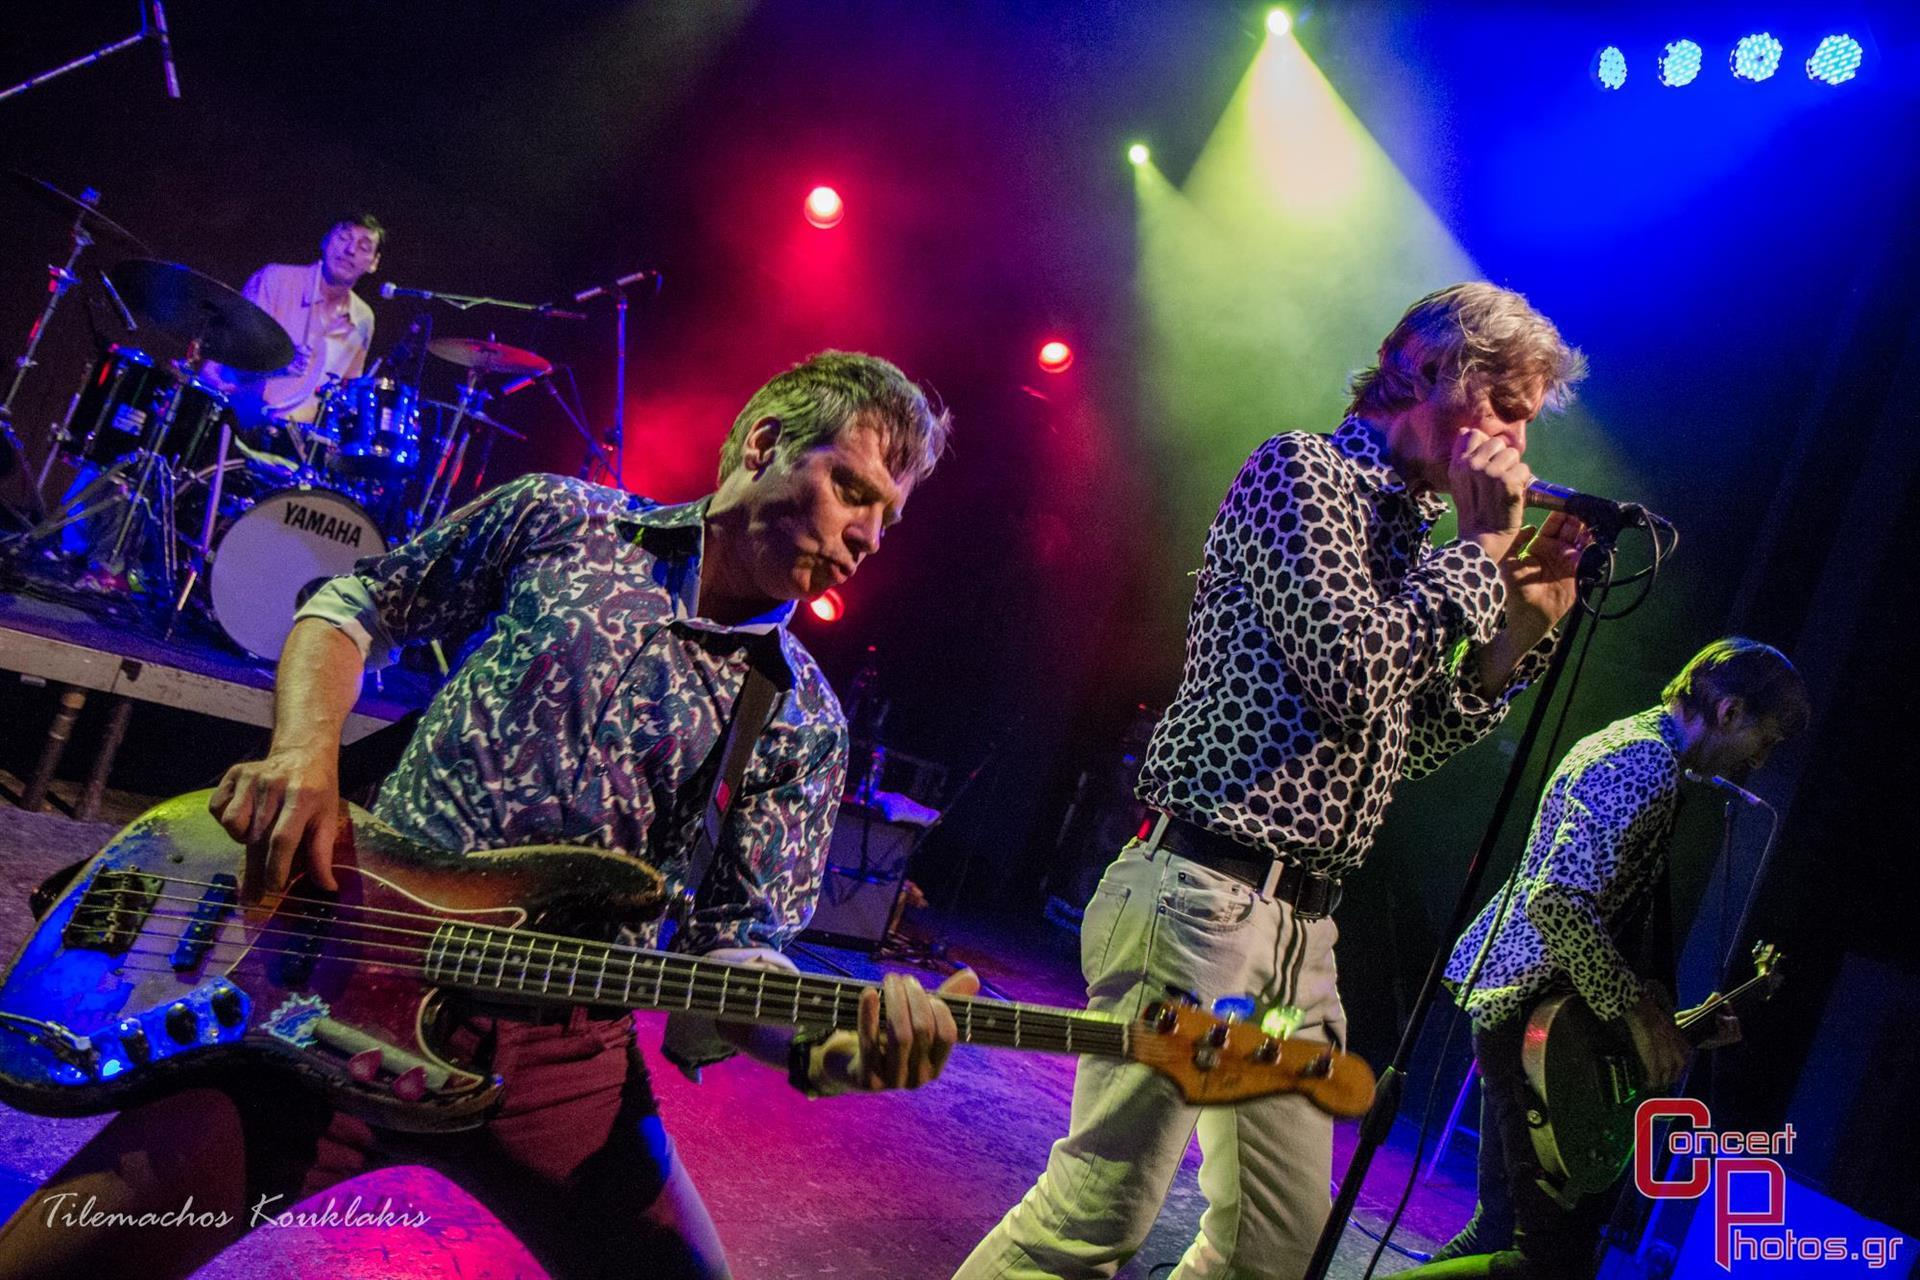 The Fleshtones - Dirty Fuse - The Statycs-The Fleshtones - Dirty Fuse - The Statycs photographer:  - IMG_7686